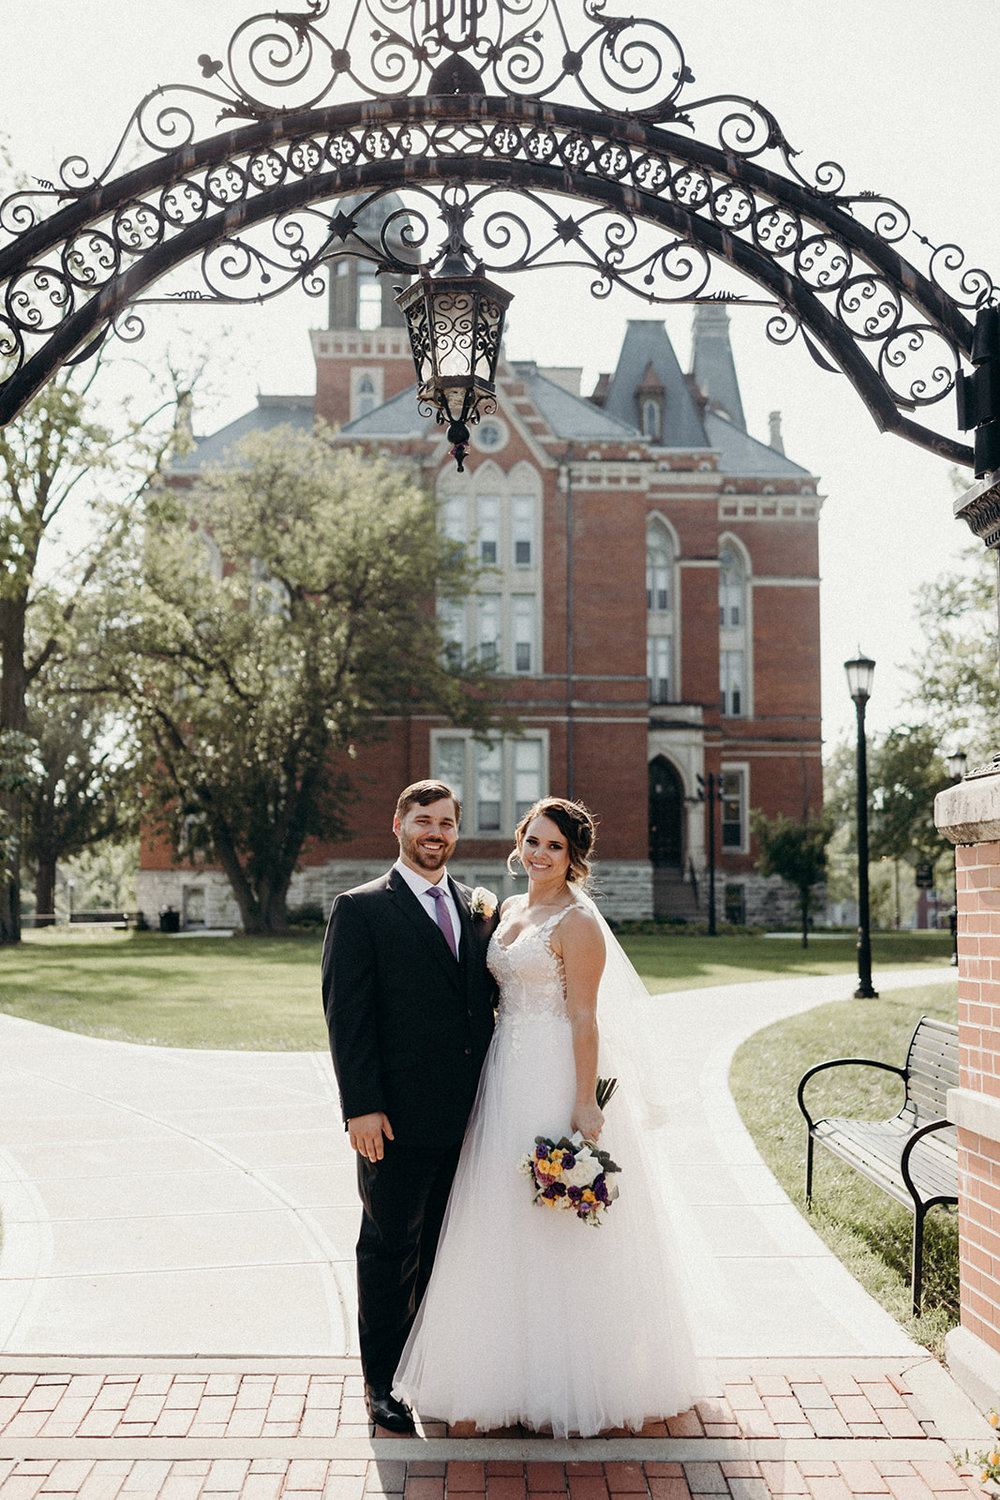 Depauw univeristy wedding